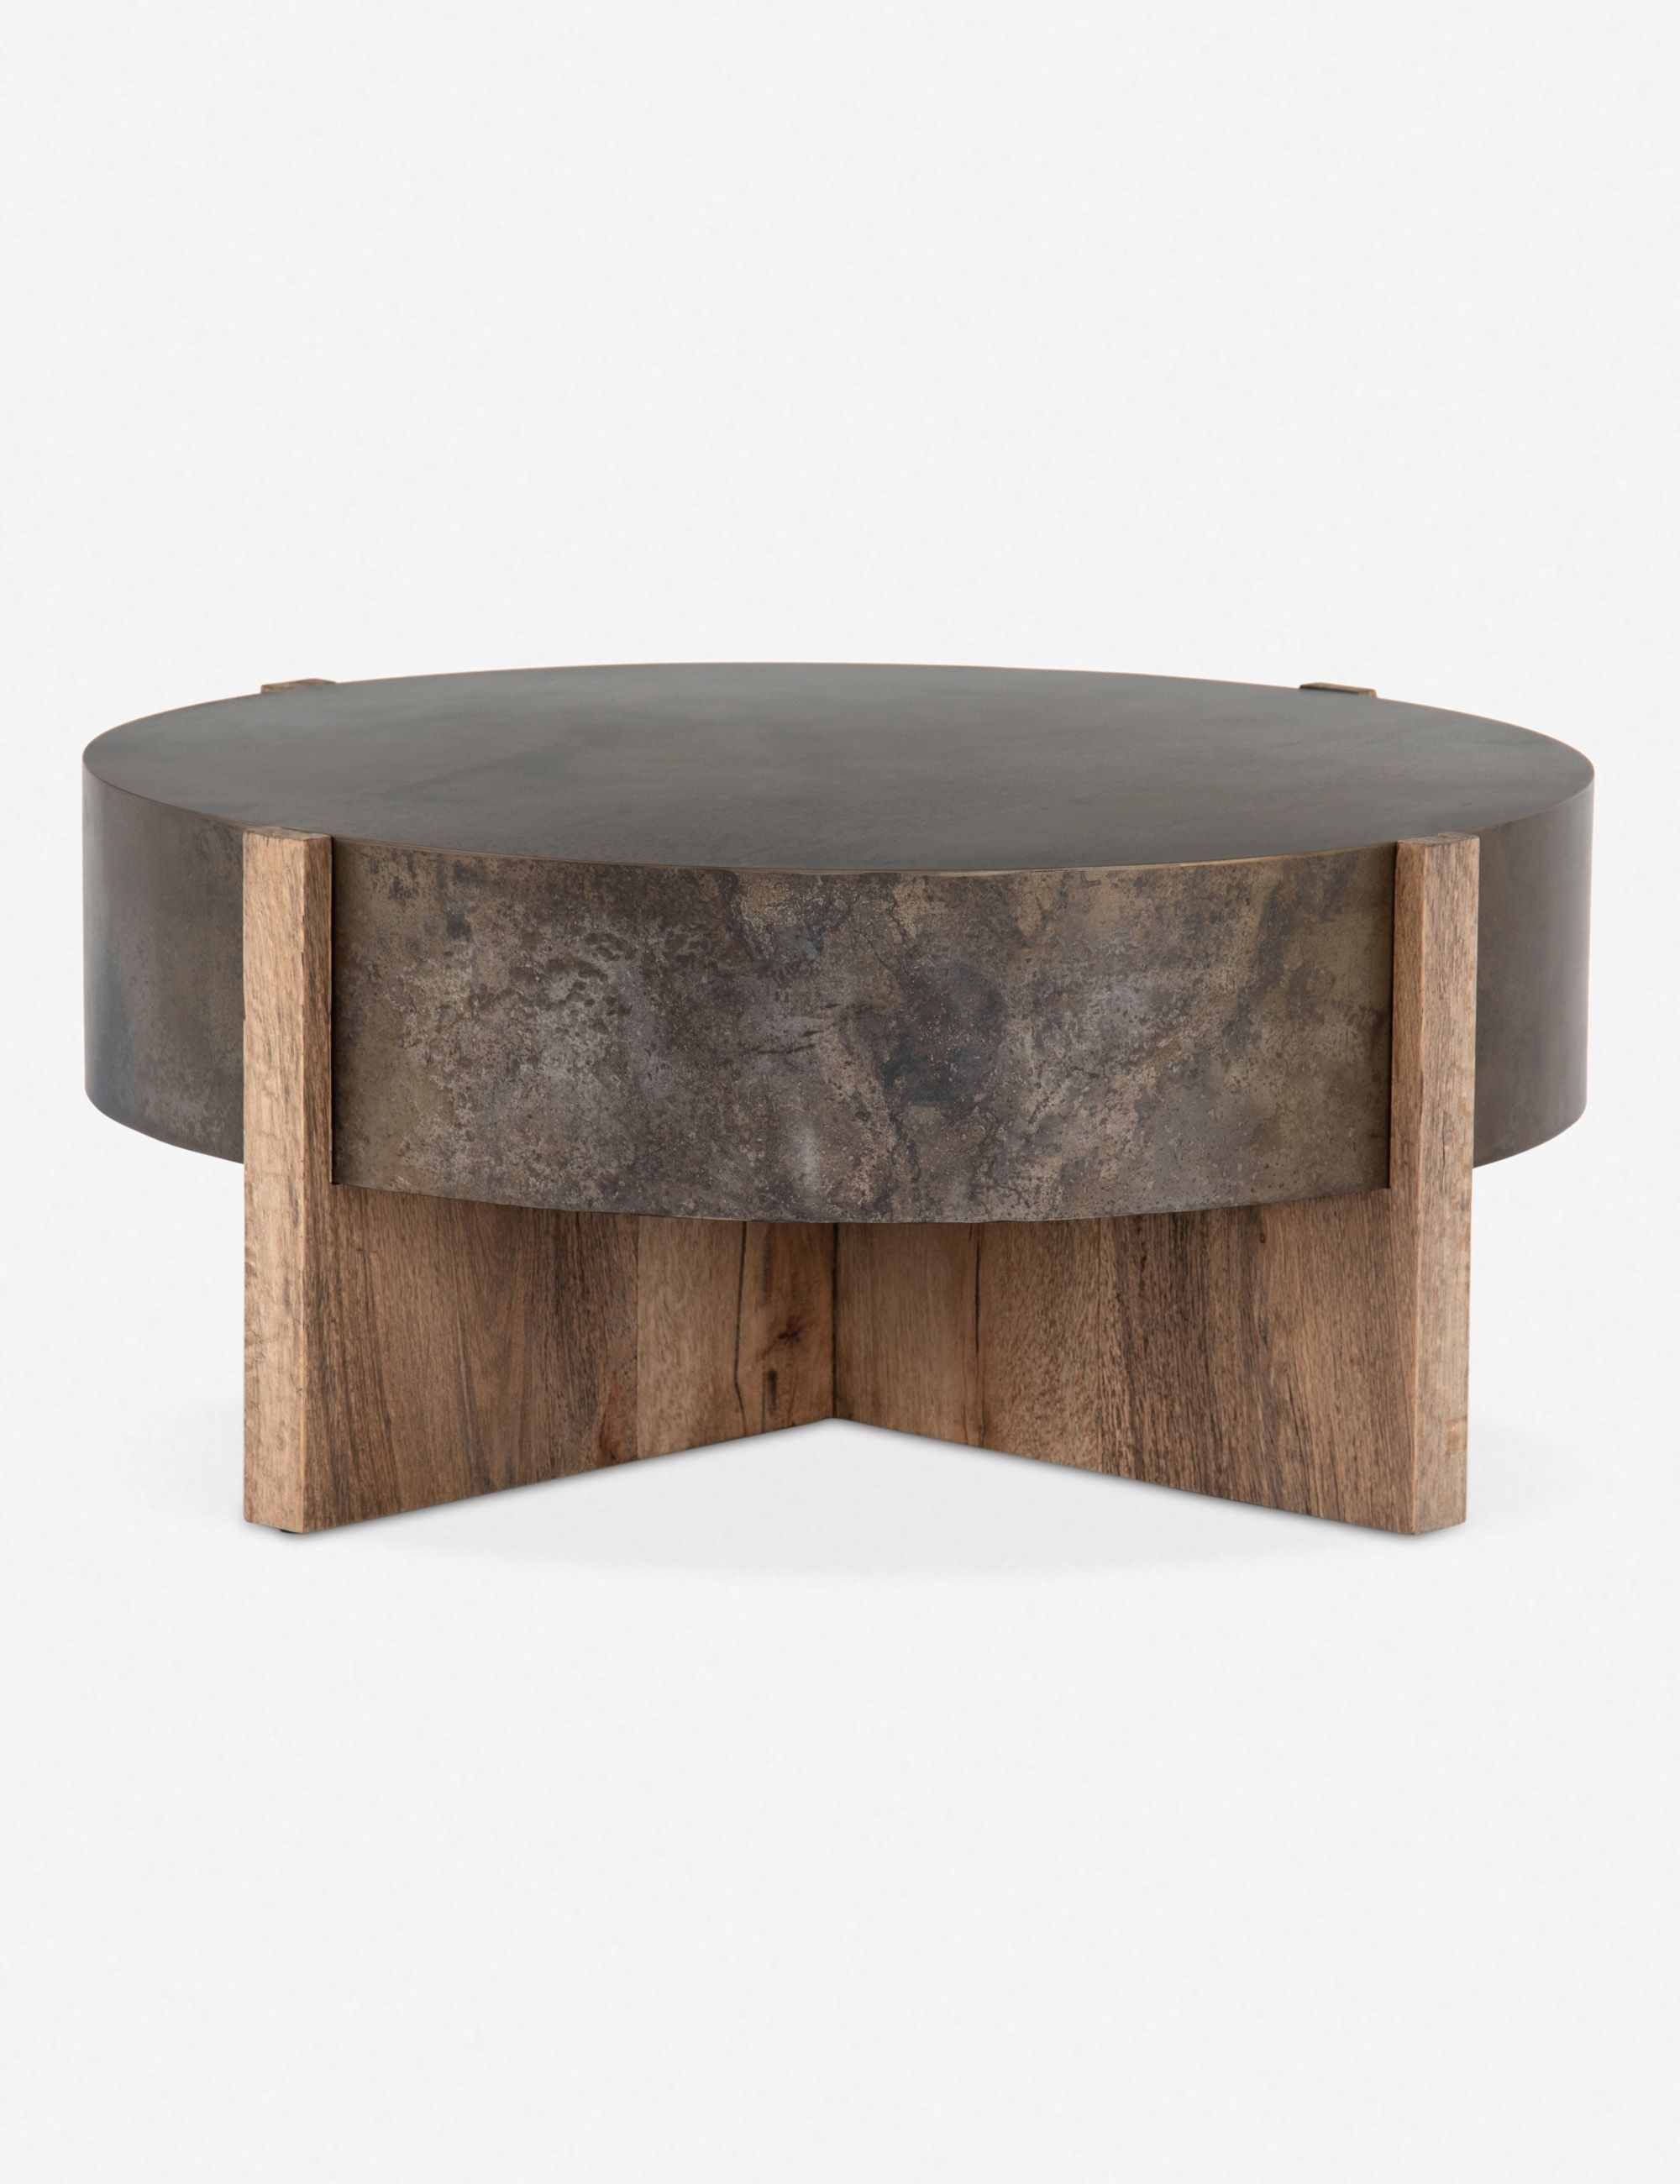 Irminie Round Coffee Table In 2020 Coffee Table Round Coffee Table Modern Round Coffee Table [ 2600 x 2000 Pixel ]